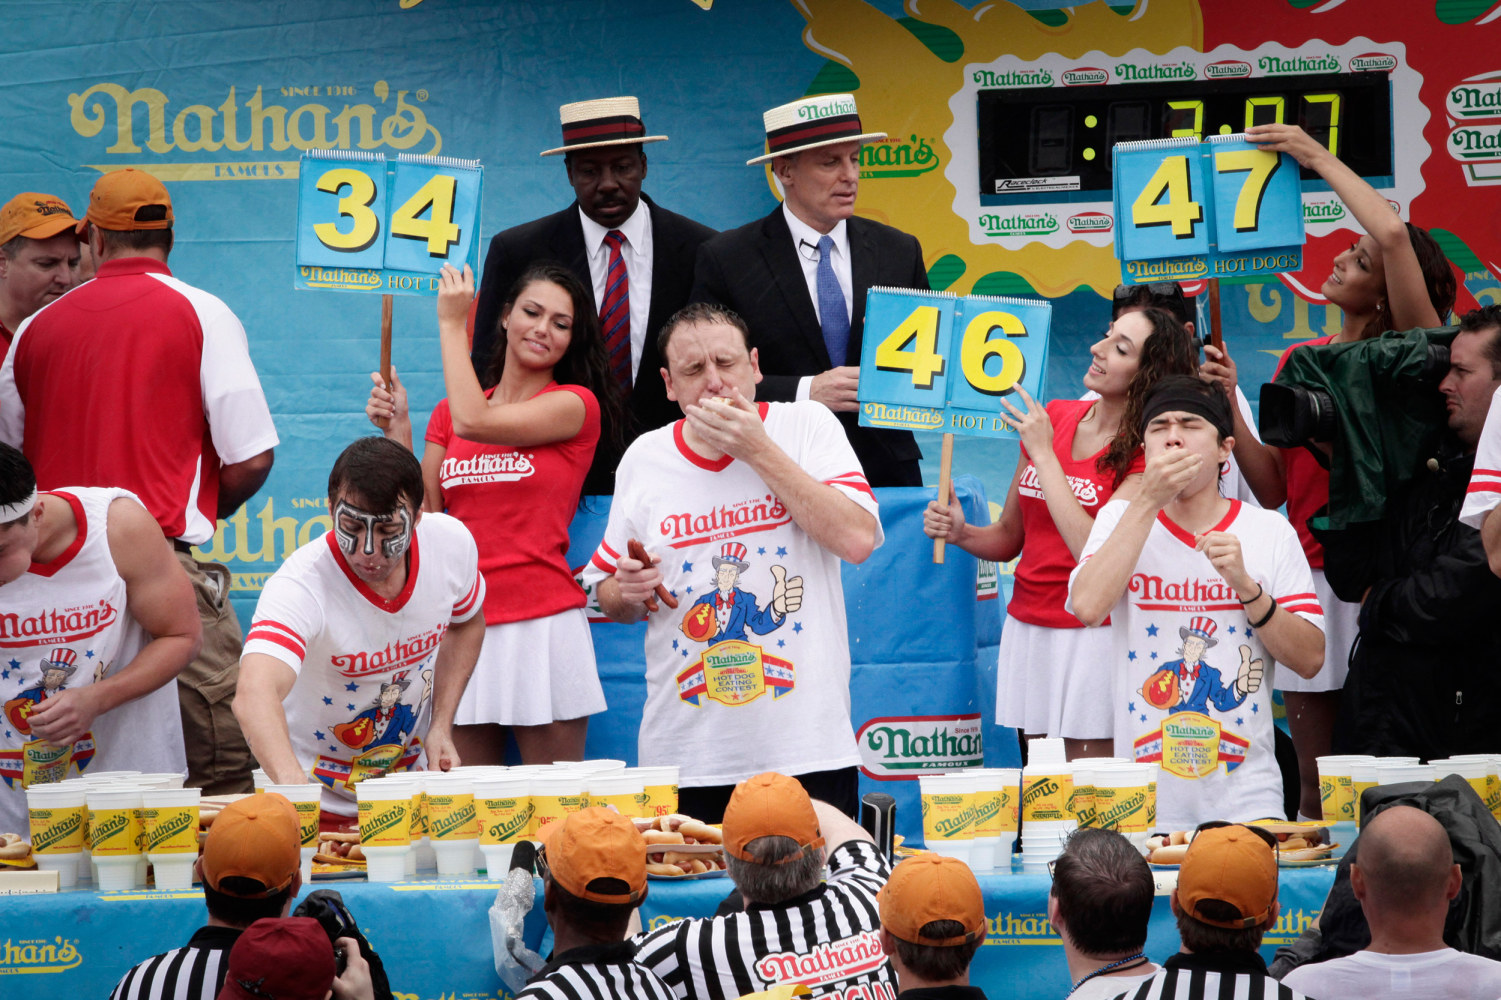 Nathan S Hot Dog Eating Contest  Coney Island